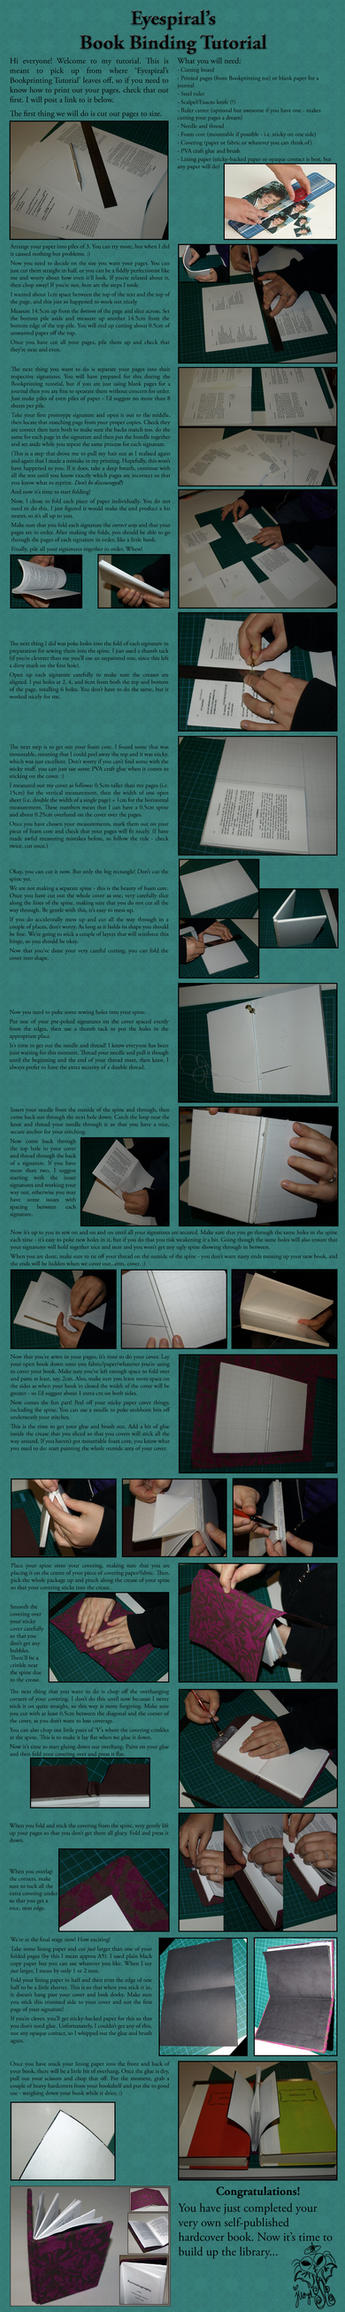 Book Binding Tutorial by Eyespiral-stock